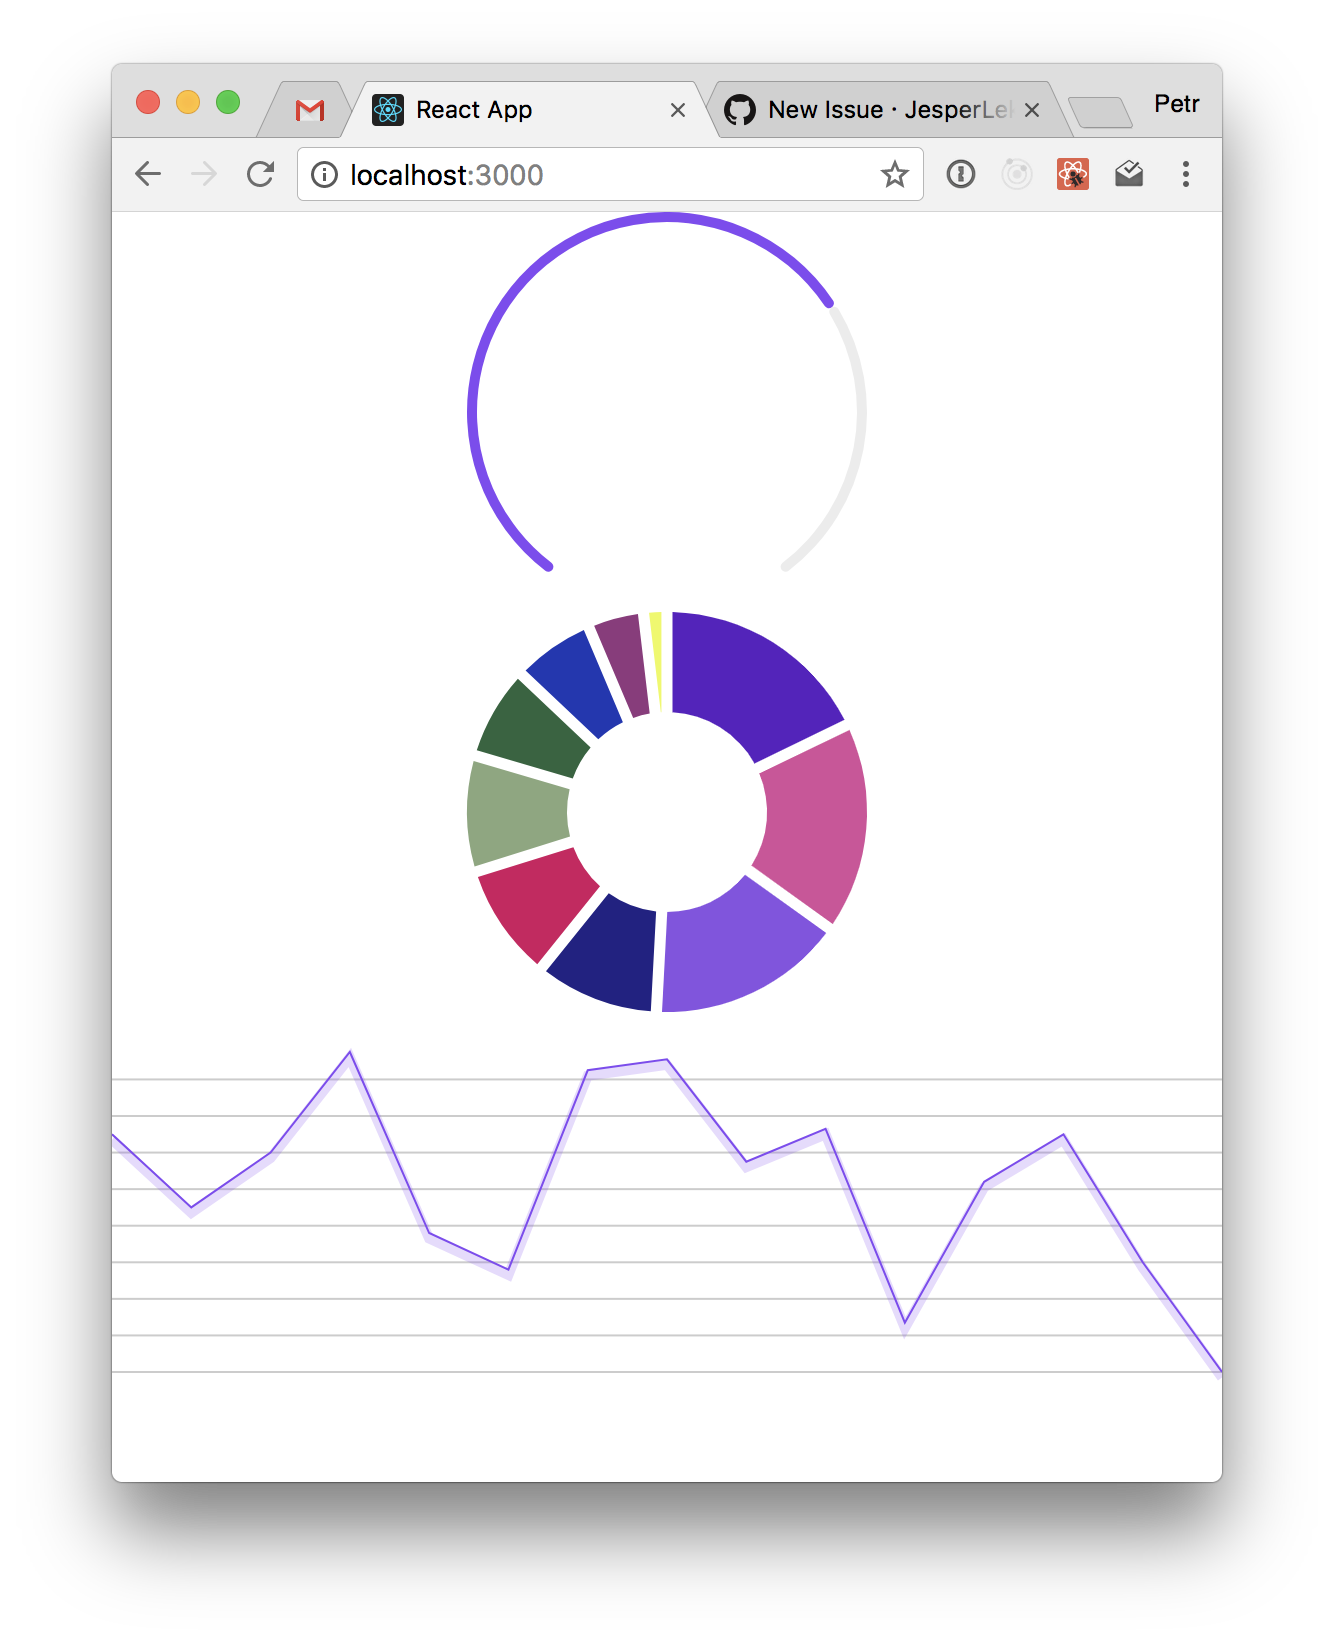 Svg charts web. React native compatibility issue